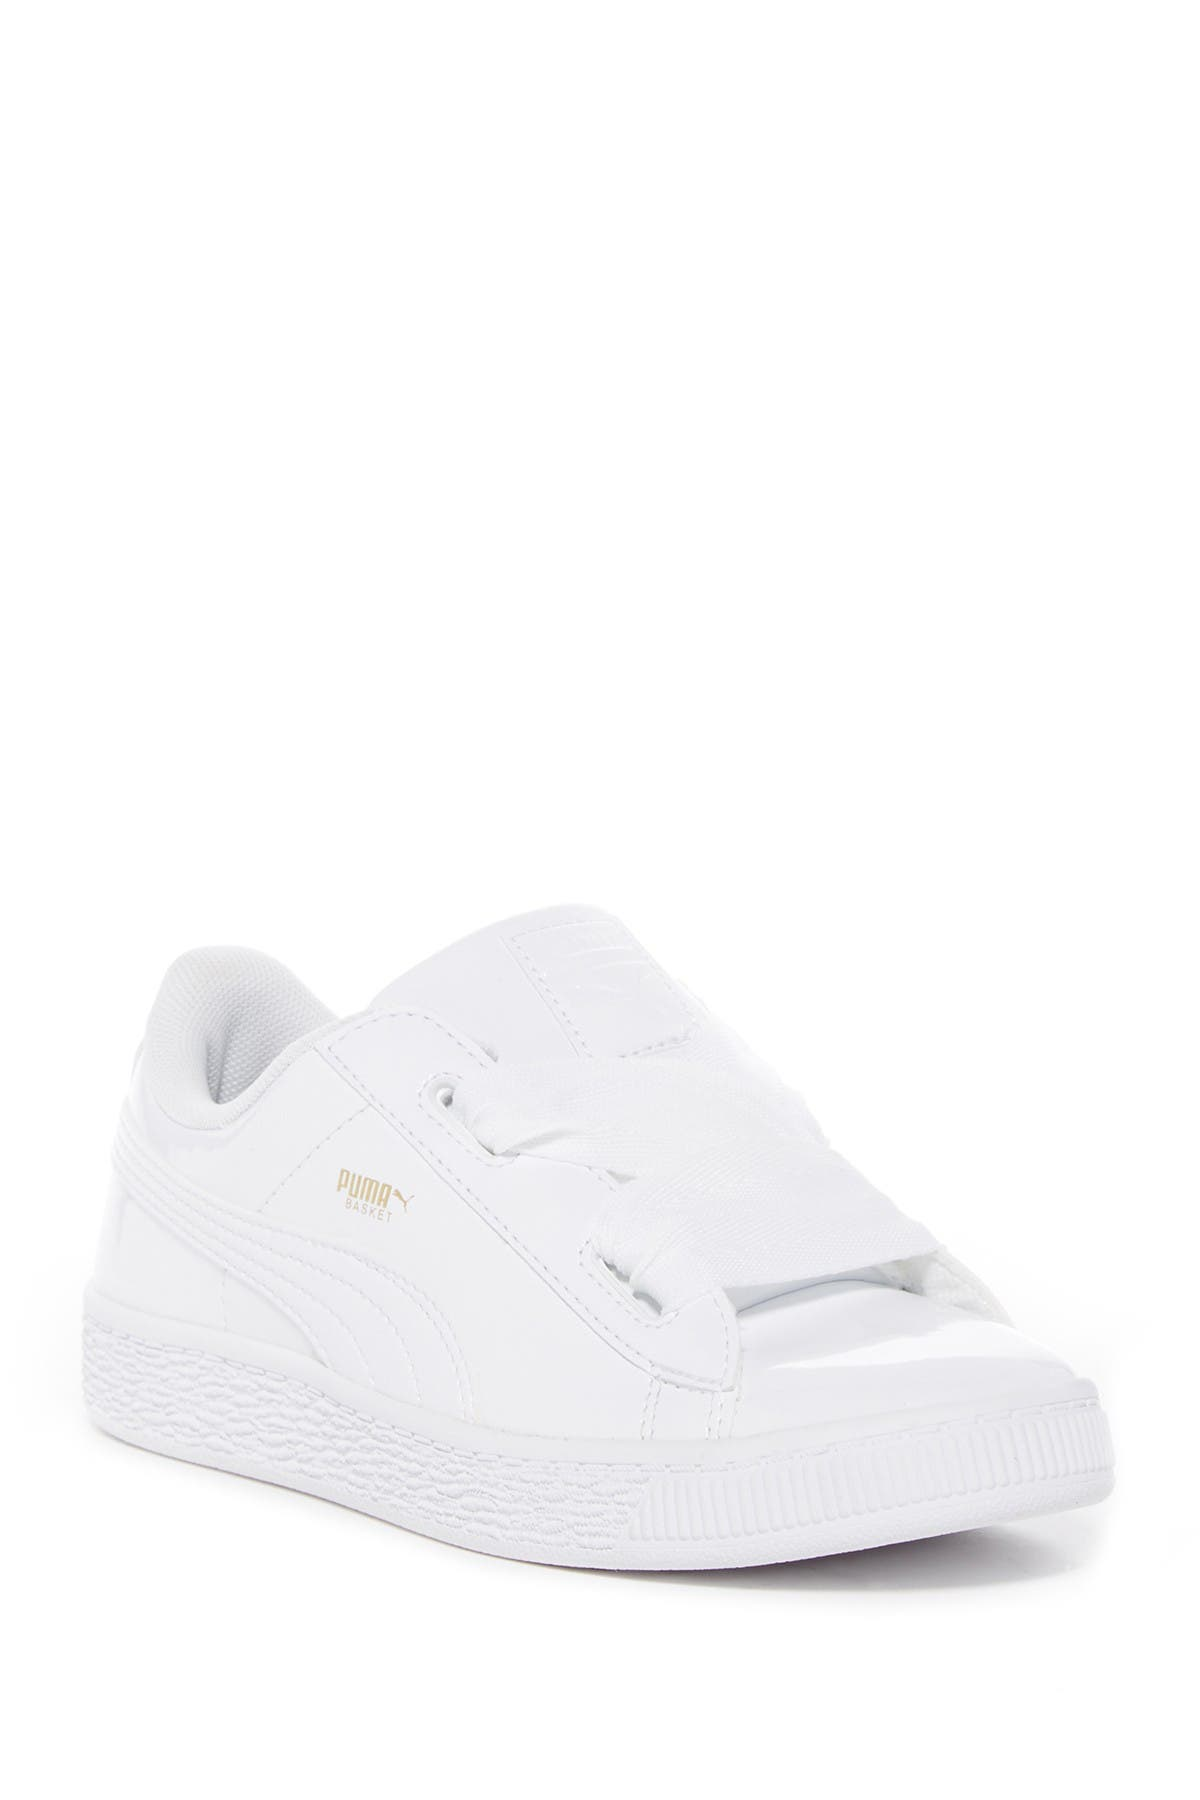 Image of PUMA Basket Heart Sneaker